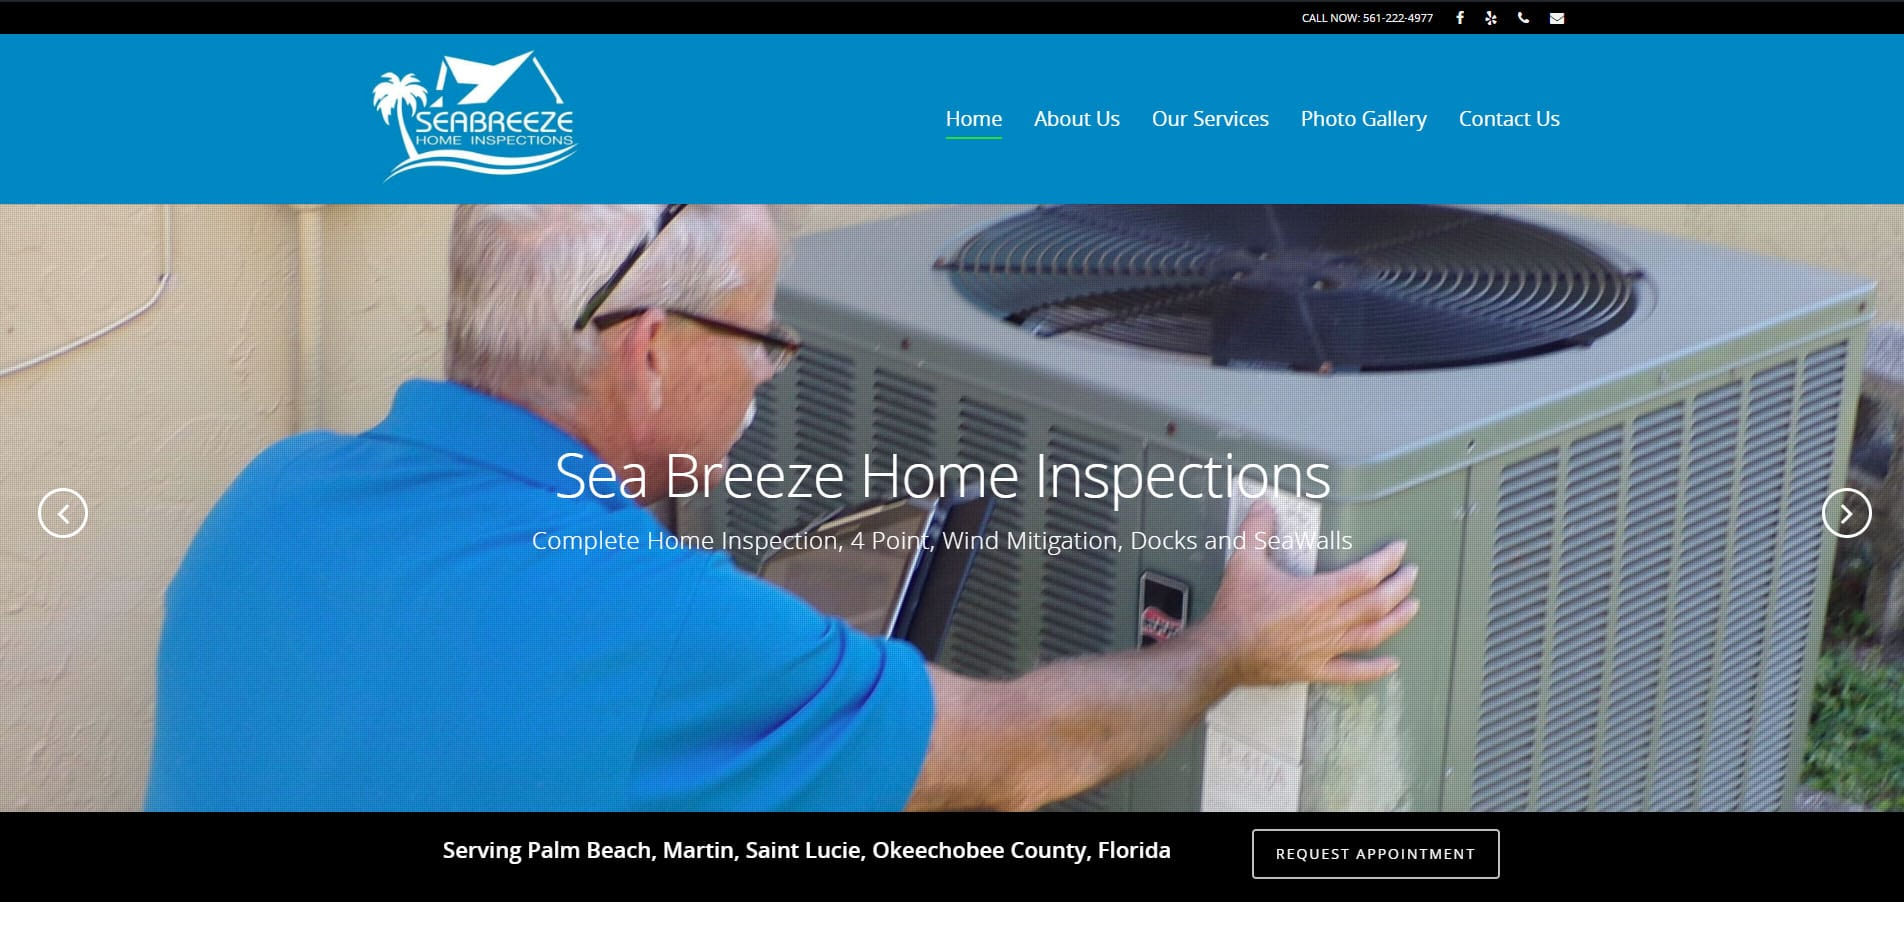 Seabreeze Home Inspections